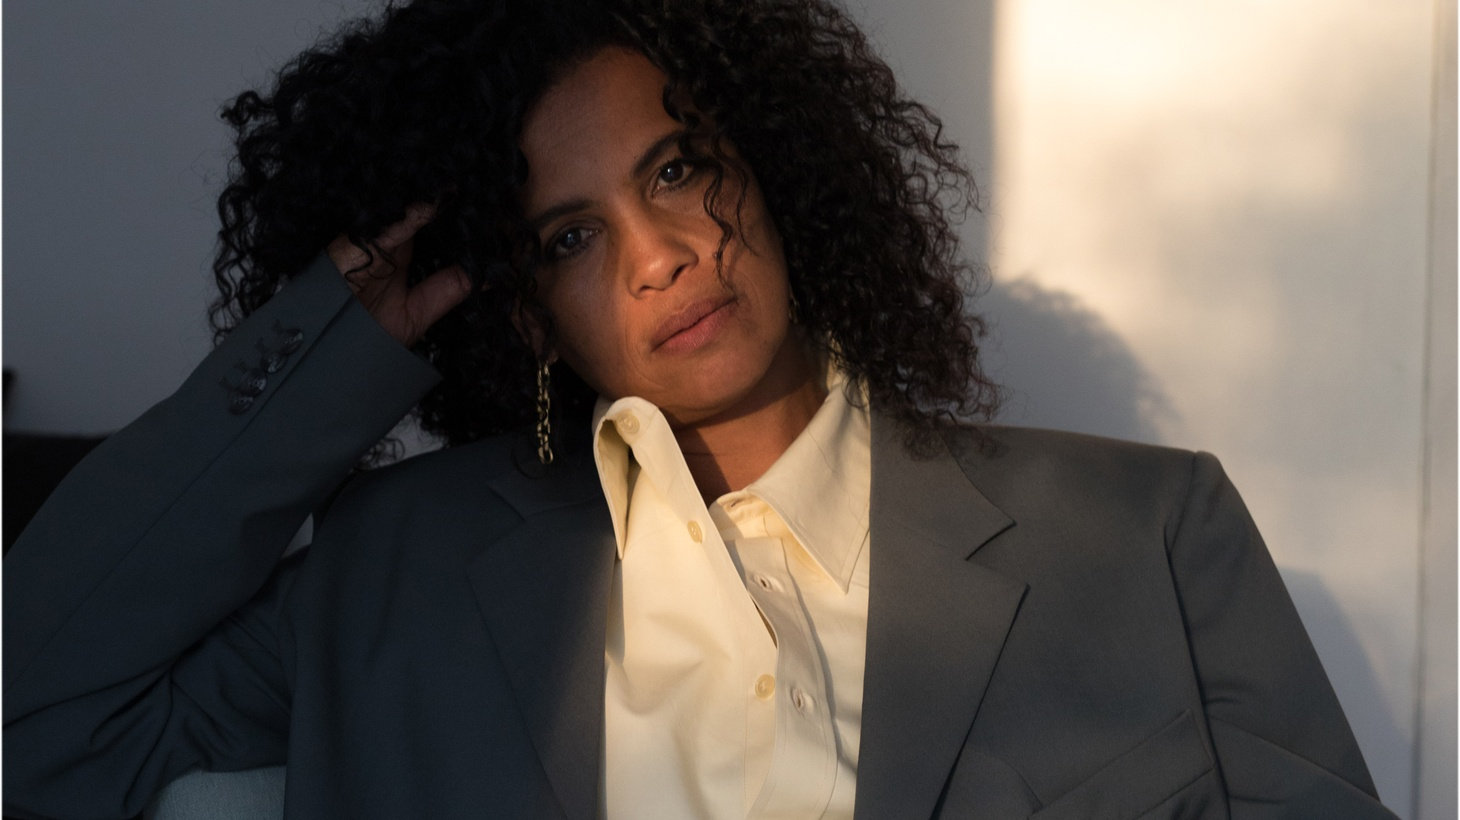 """Neneh Cherry came up in the late 80's with a strong socio/political voice. A frequent collaborator who doesn't release much of her own music, her new album is all about personal politics, check out """"Kong."""""""